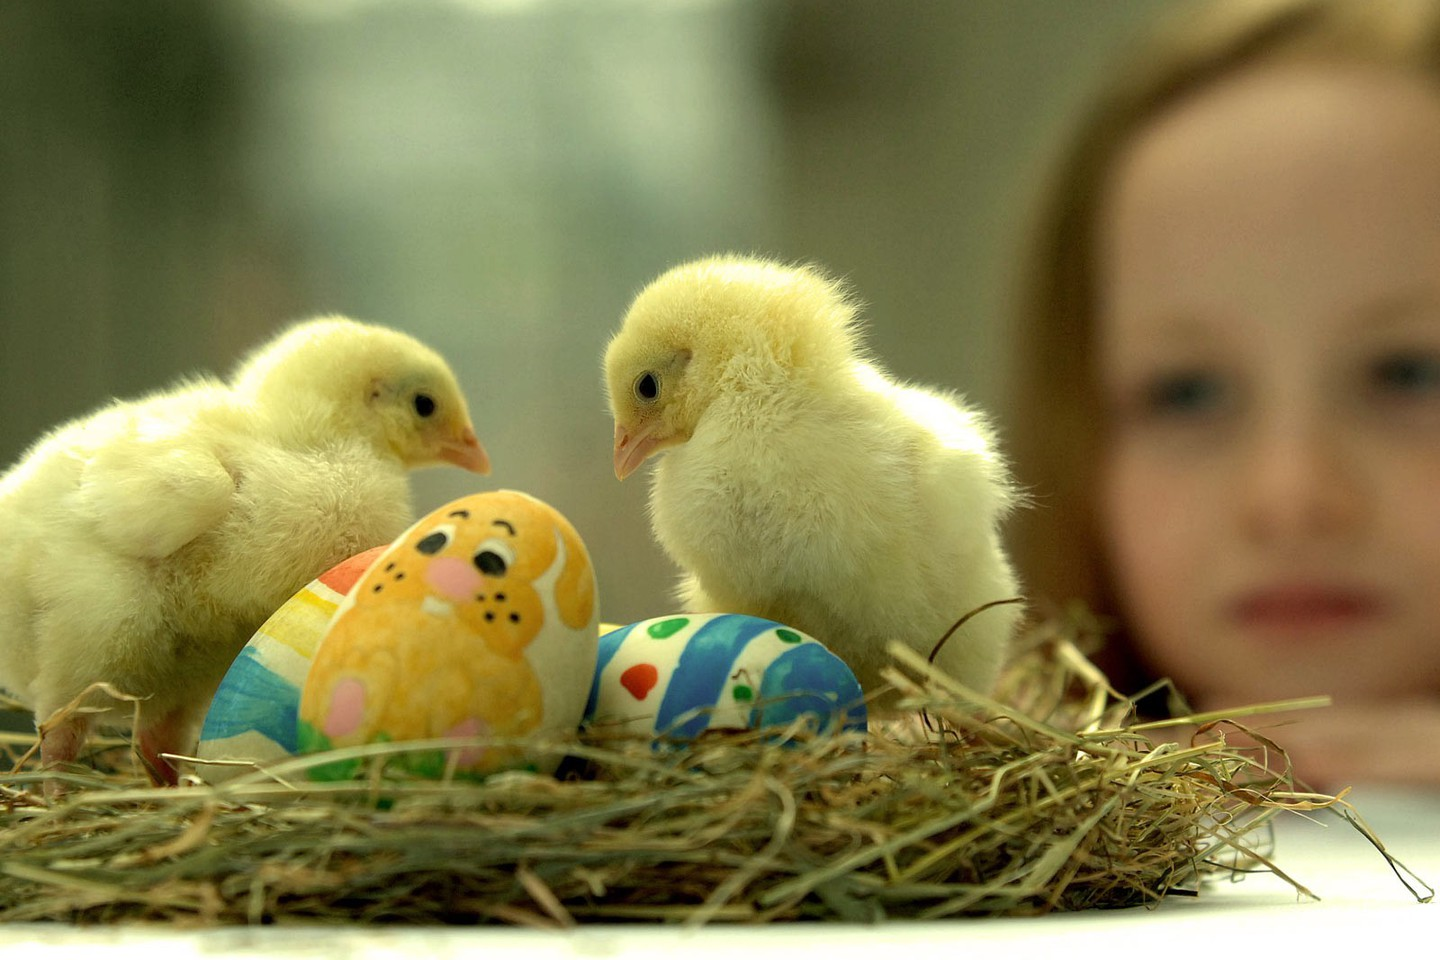 easter-chicks-chickens-nest-baby-birds-1440x960-wallpaper